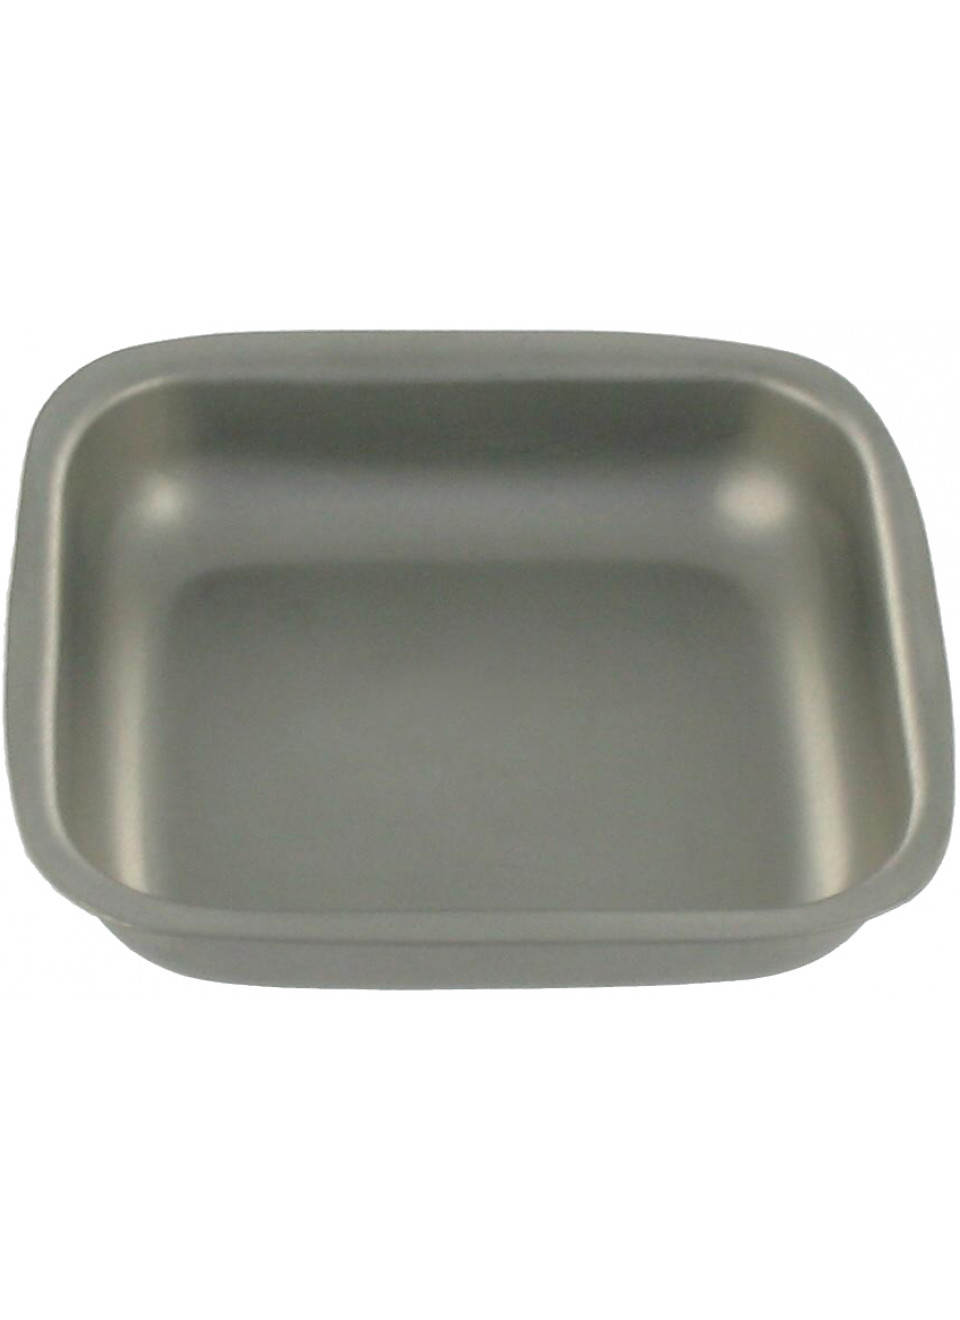 Bandeja cuadrada para hueso LENGTH:2.5IN (6.5CM) WIDTH:2.3IN (5.8CM) DEPTH:0.4IN (1.3CM) Dental USA